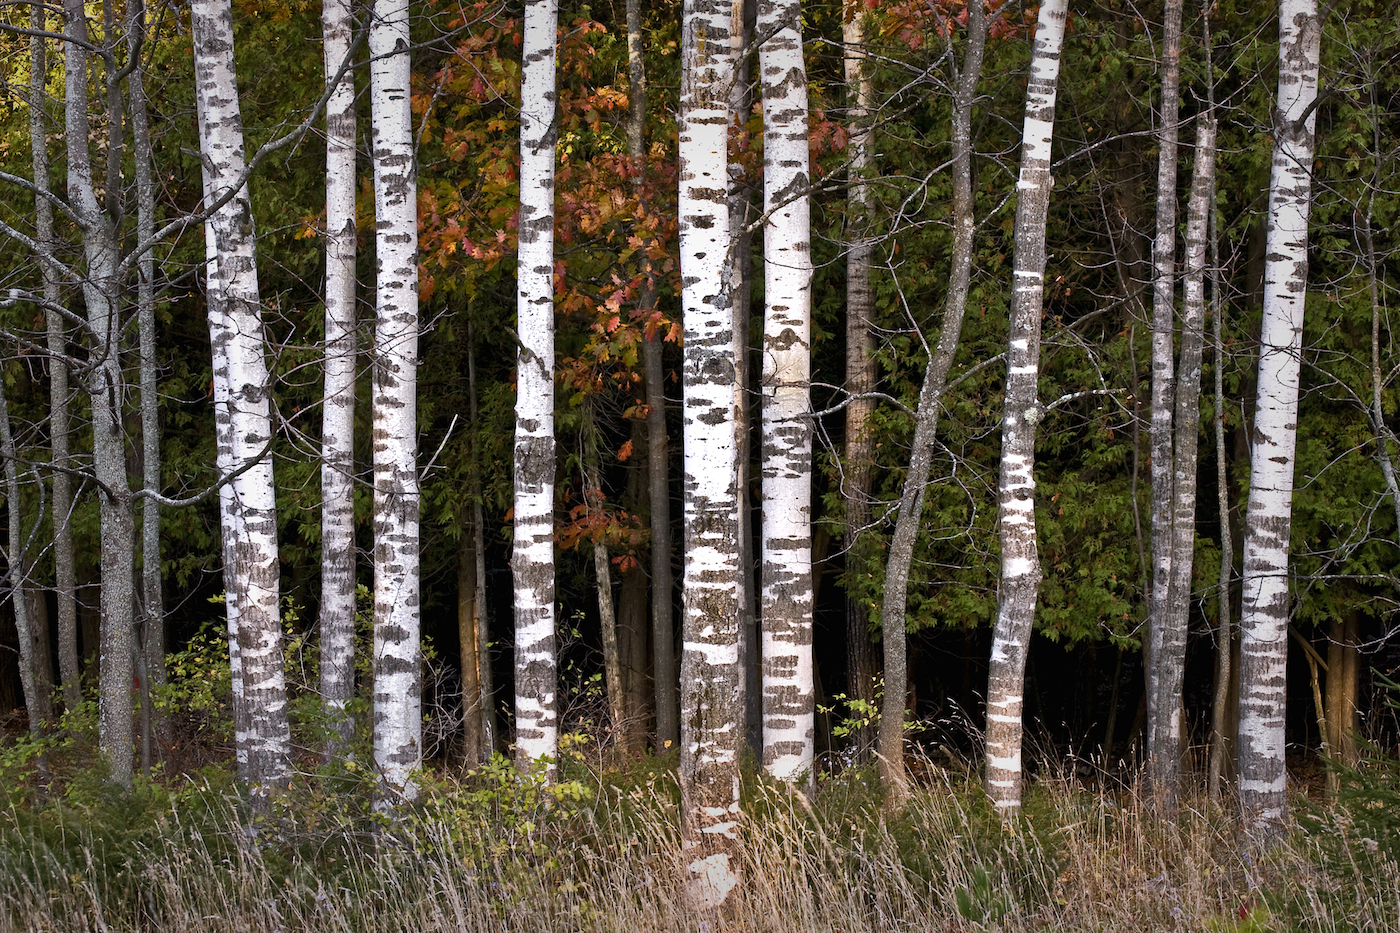 Landscape of birch trees